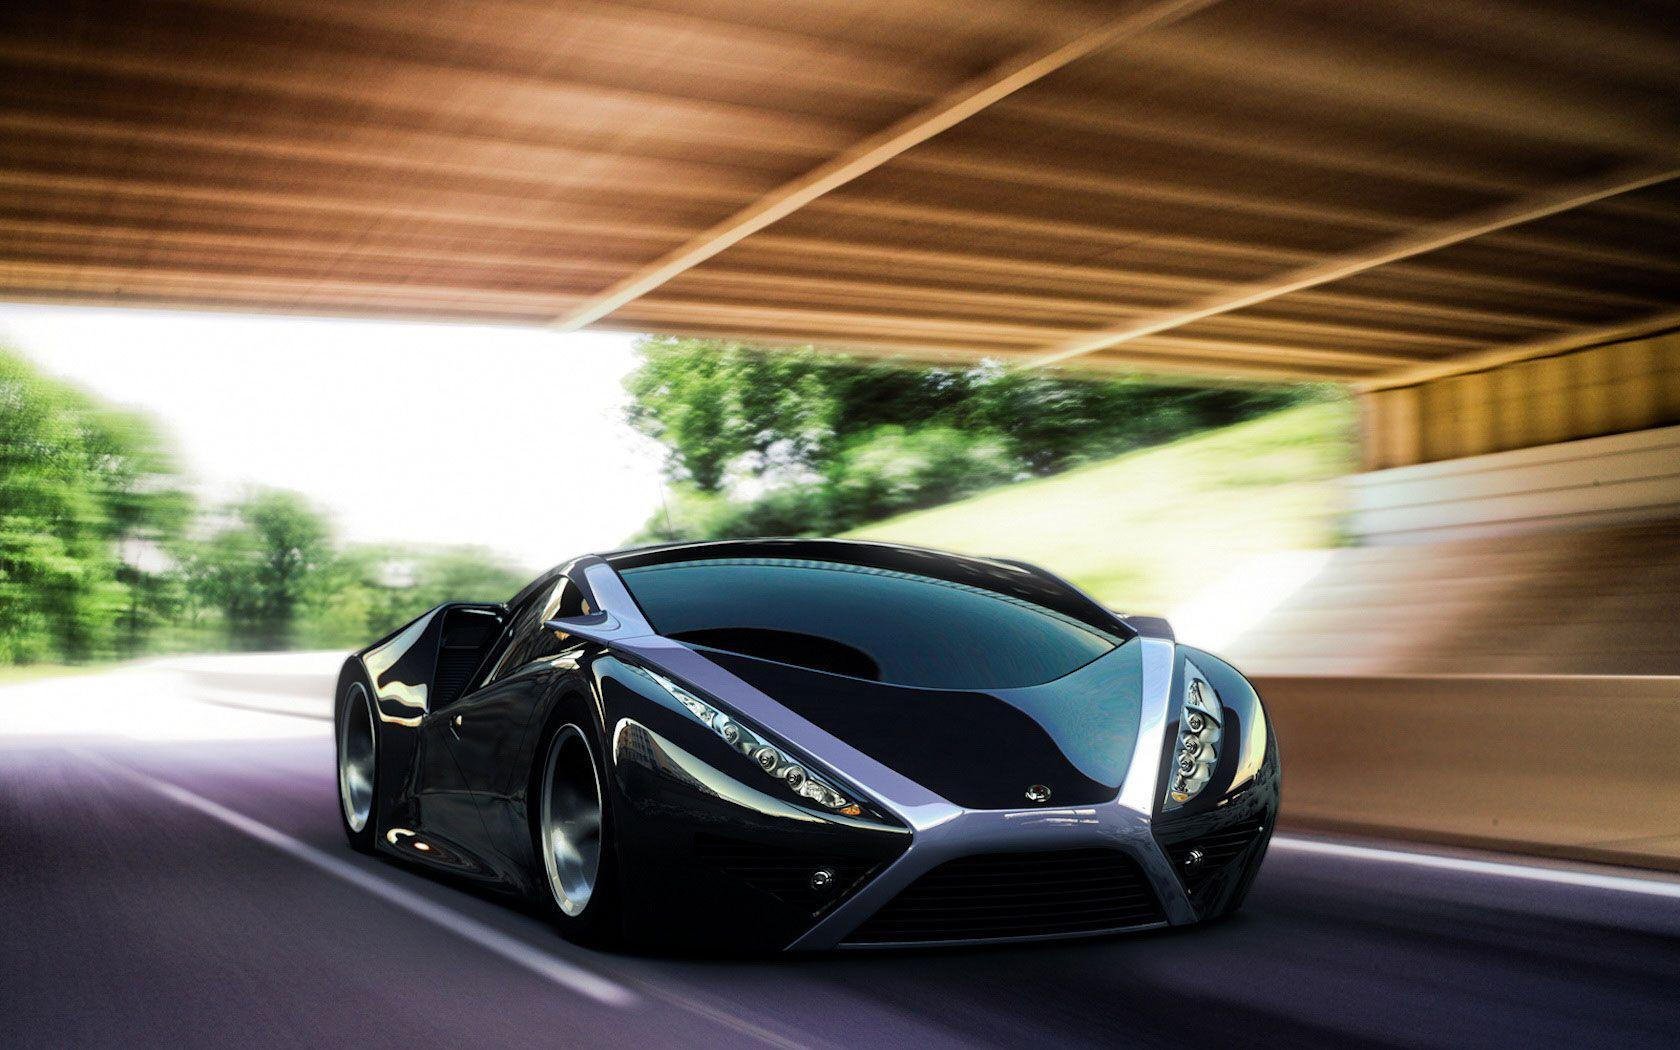 cool car wallpaper hd - photo #2